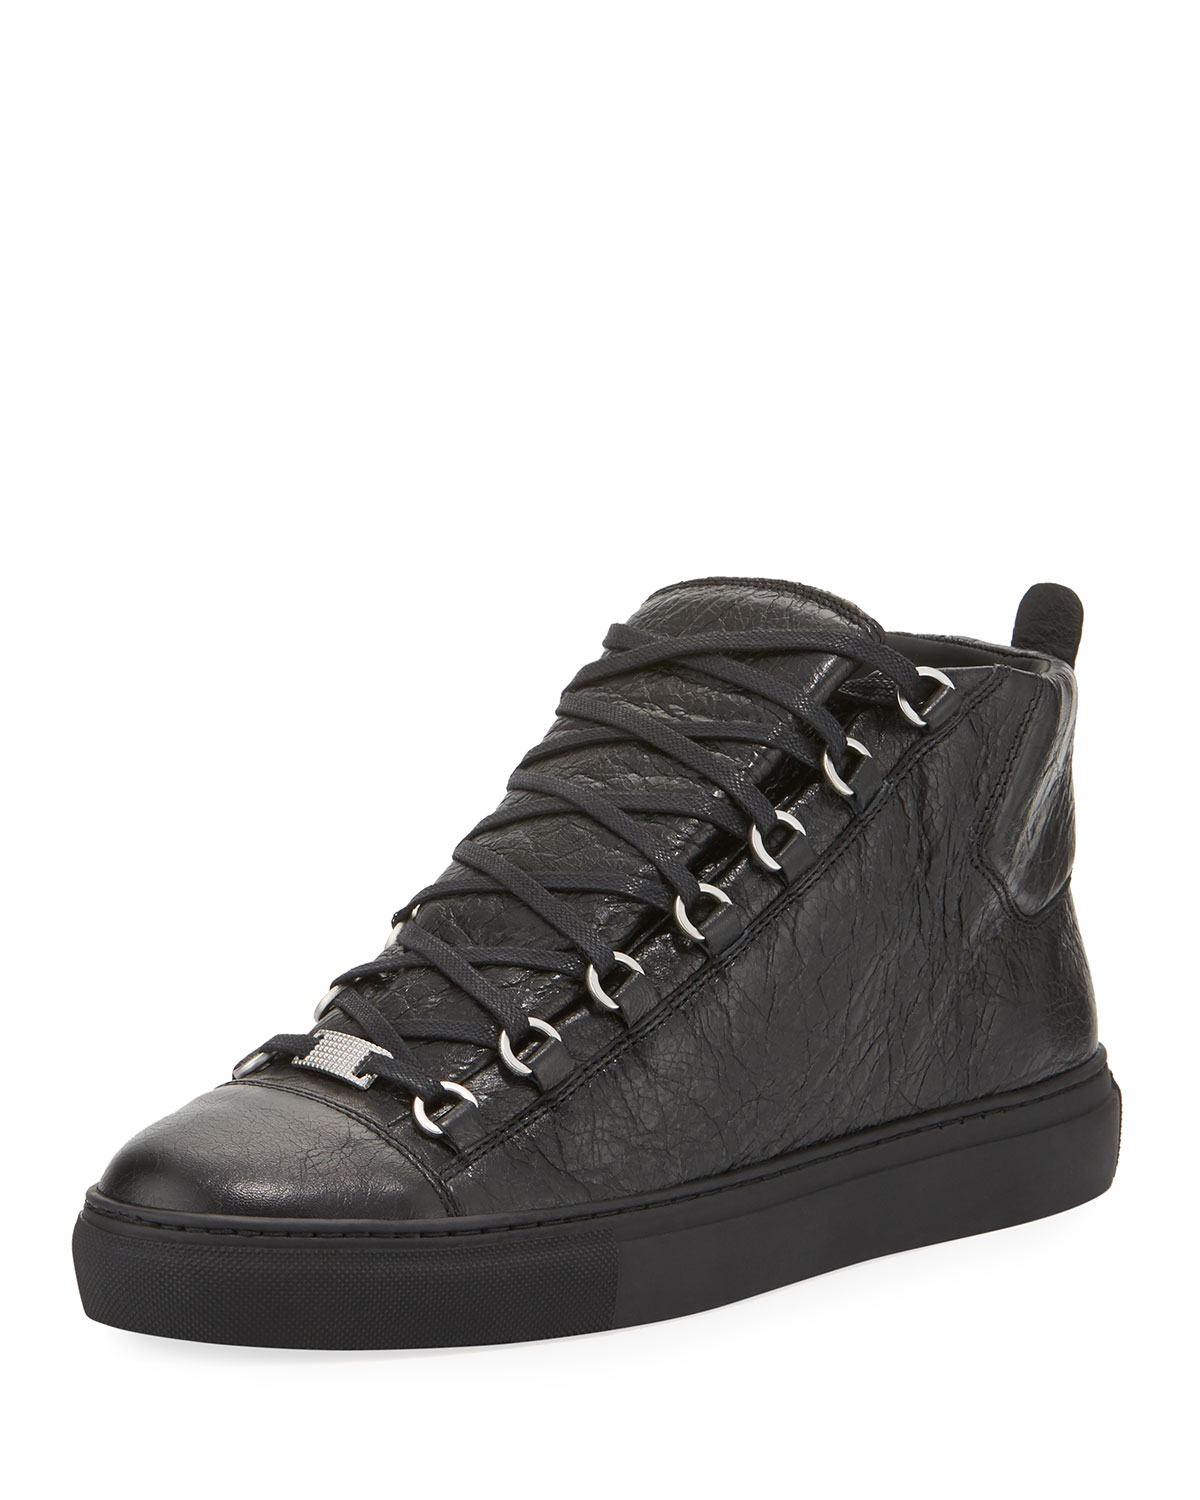 7a89b99315ef Balenciaga Men s Arena Leather High-Top Sneaker